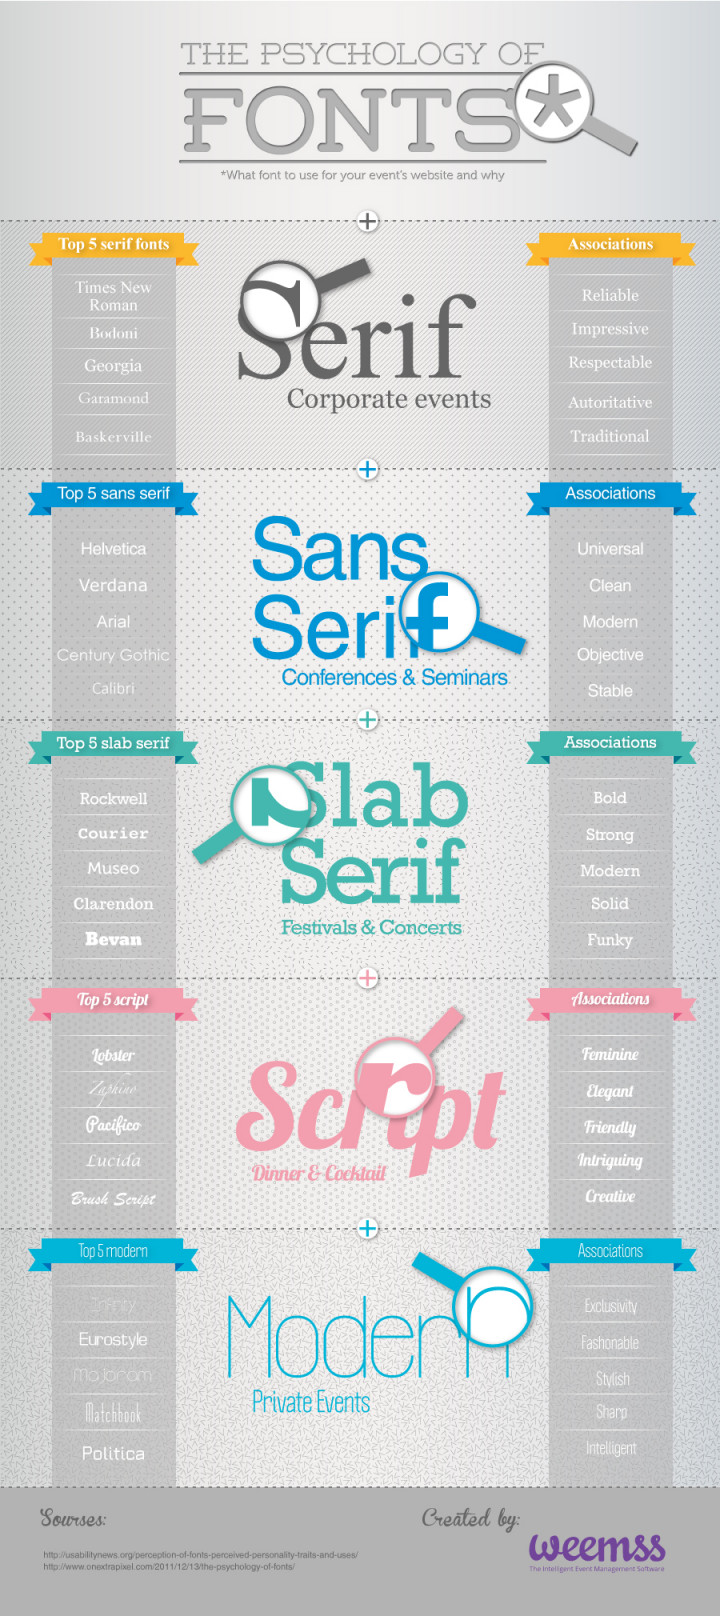 The Psychology of fonts in Event Management